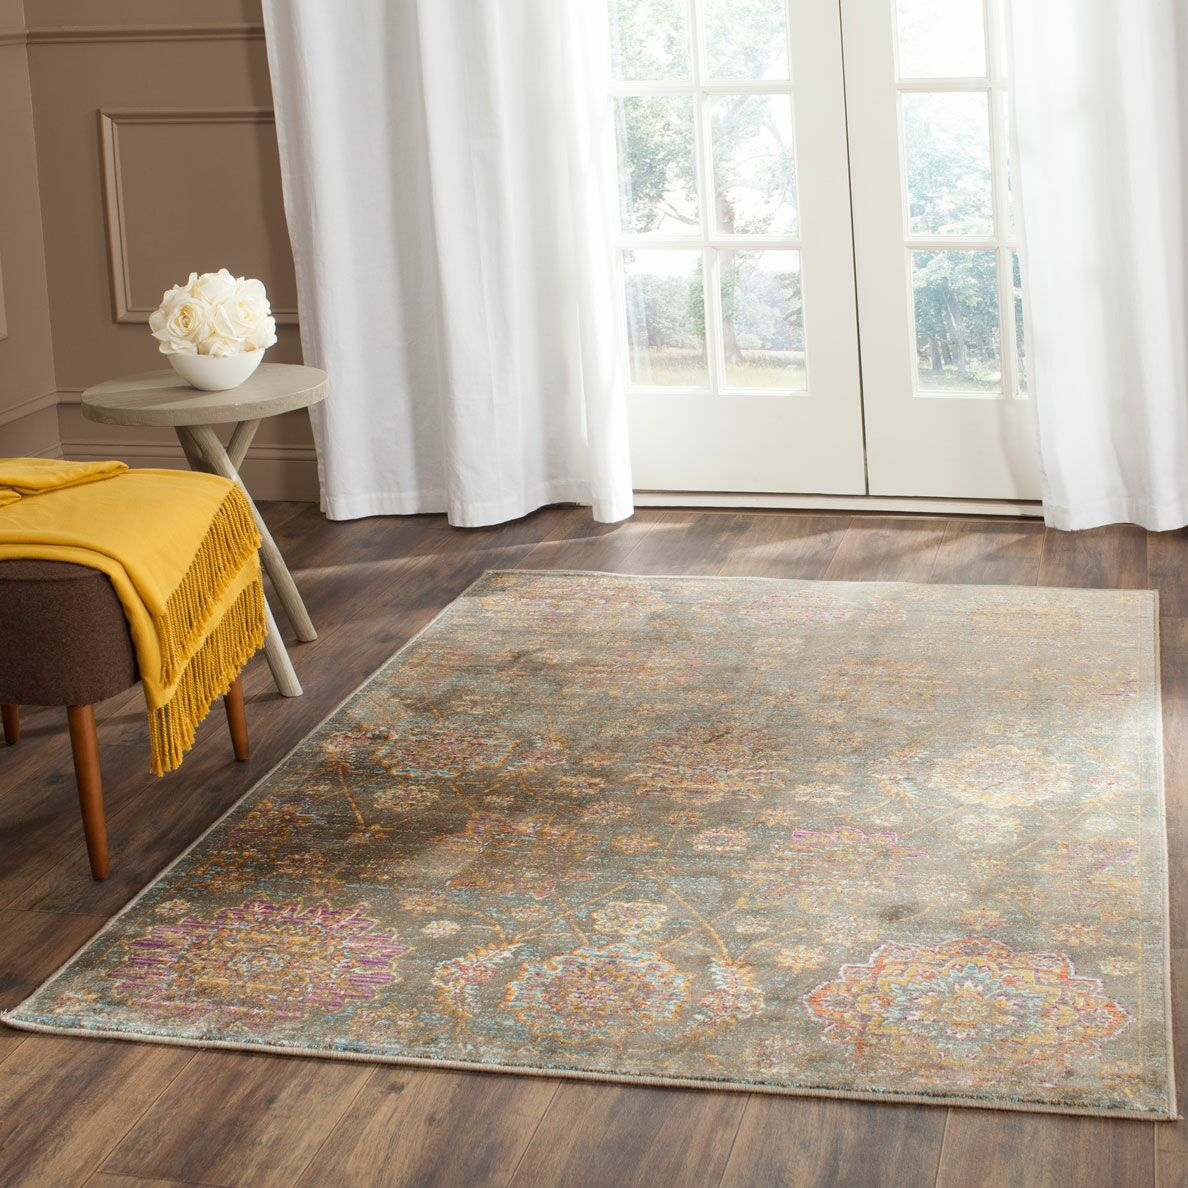 Beausejour Gray Area Rug Rug Size: Rectangle 5'3